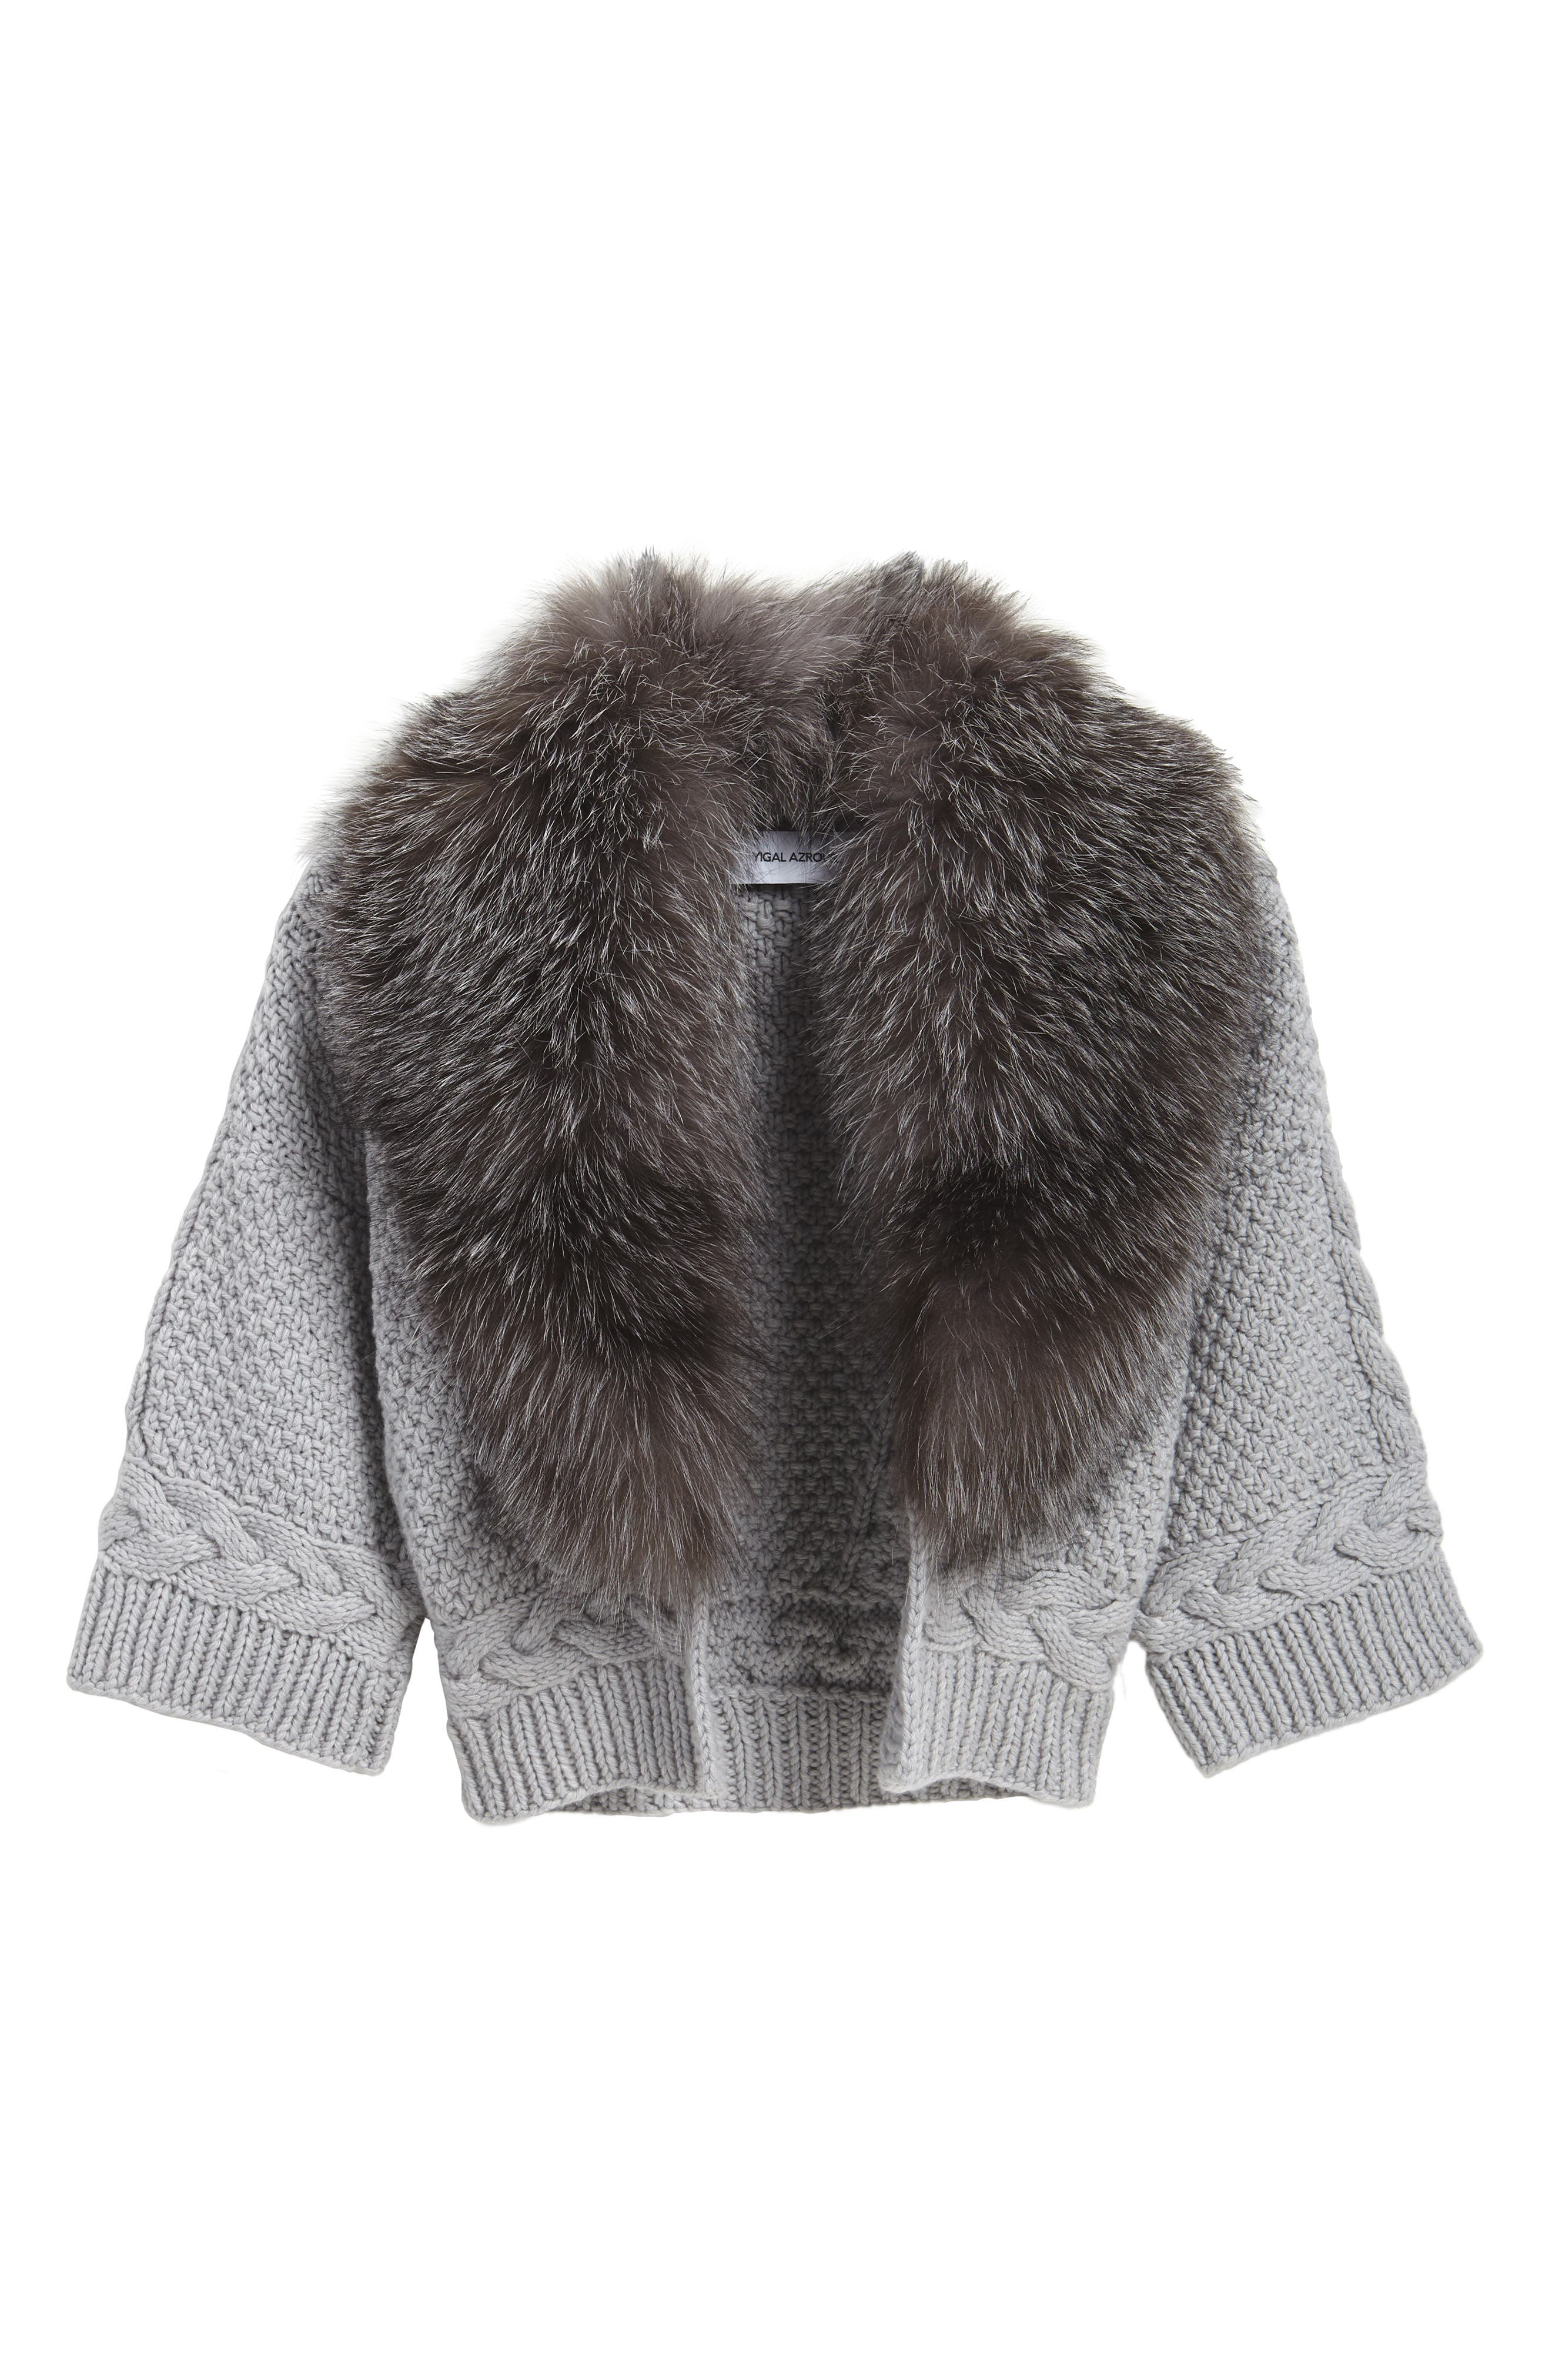 Alternate Image 5  - Yigal Azrouël Merino Wool & Cashmere Knit Bolero with Removable Genuine Fox Fur Collar